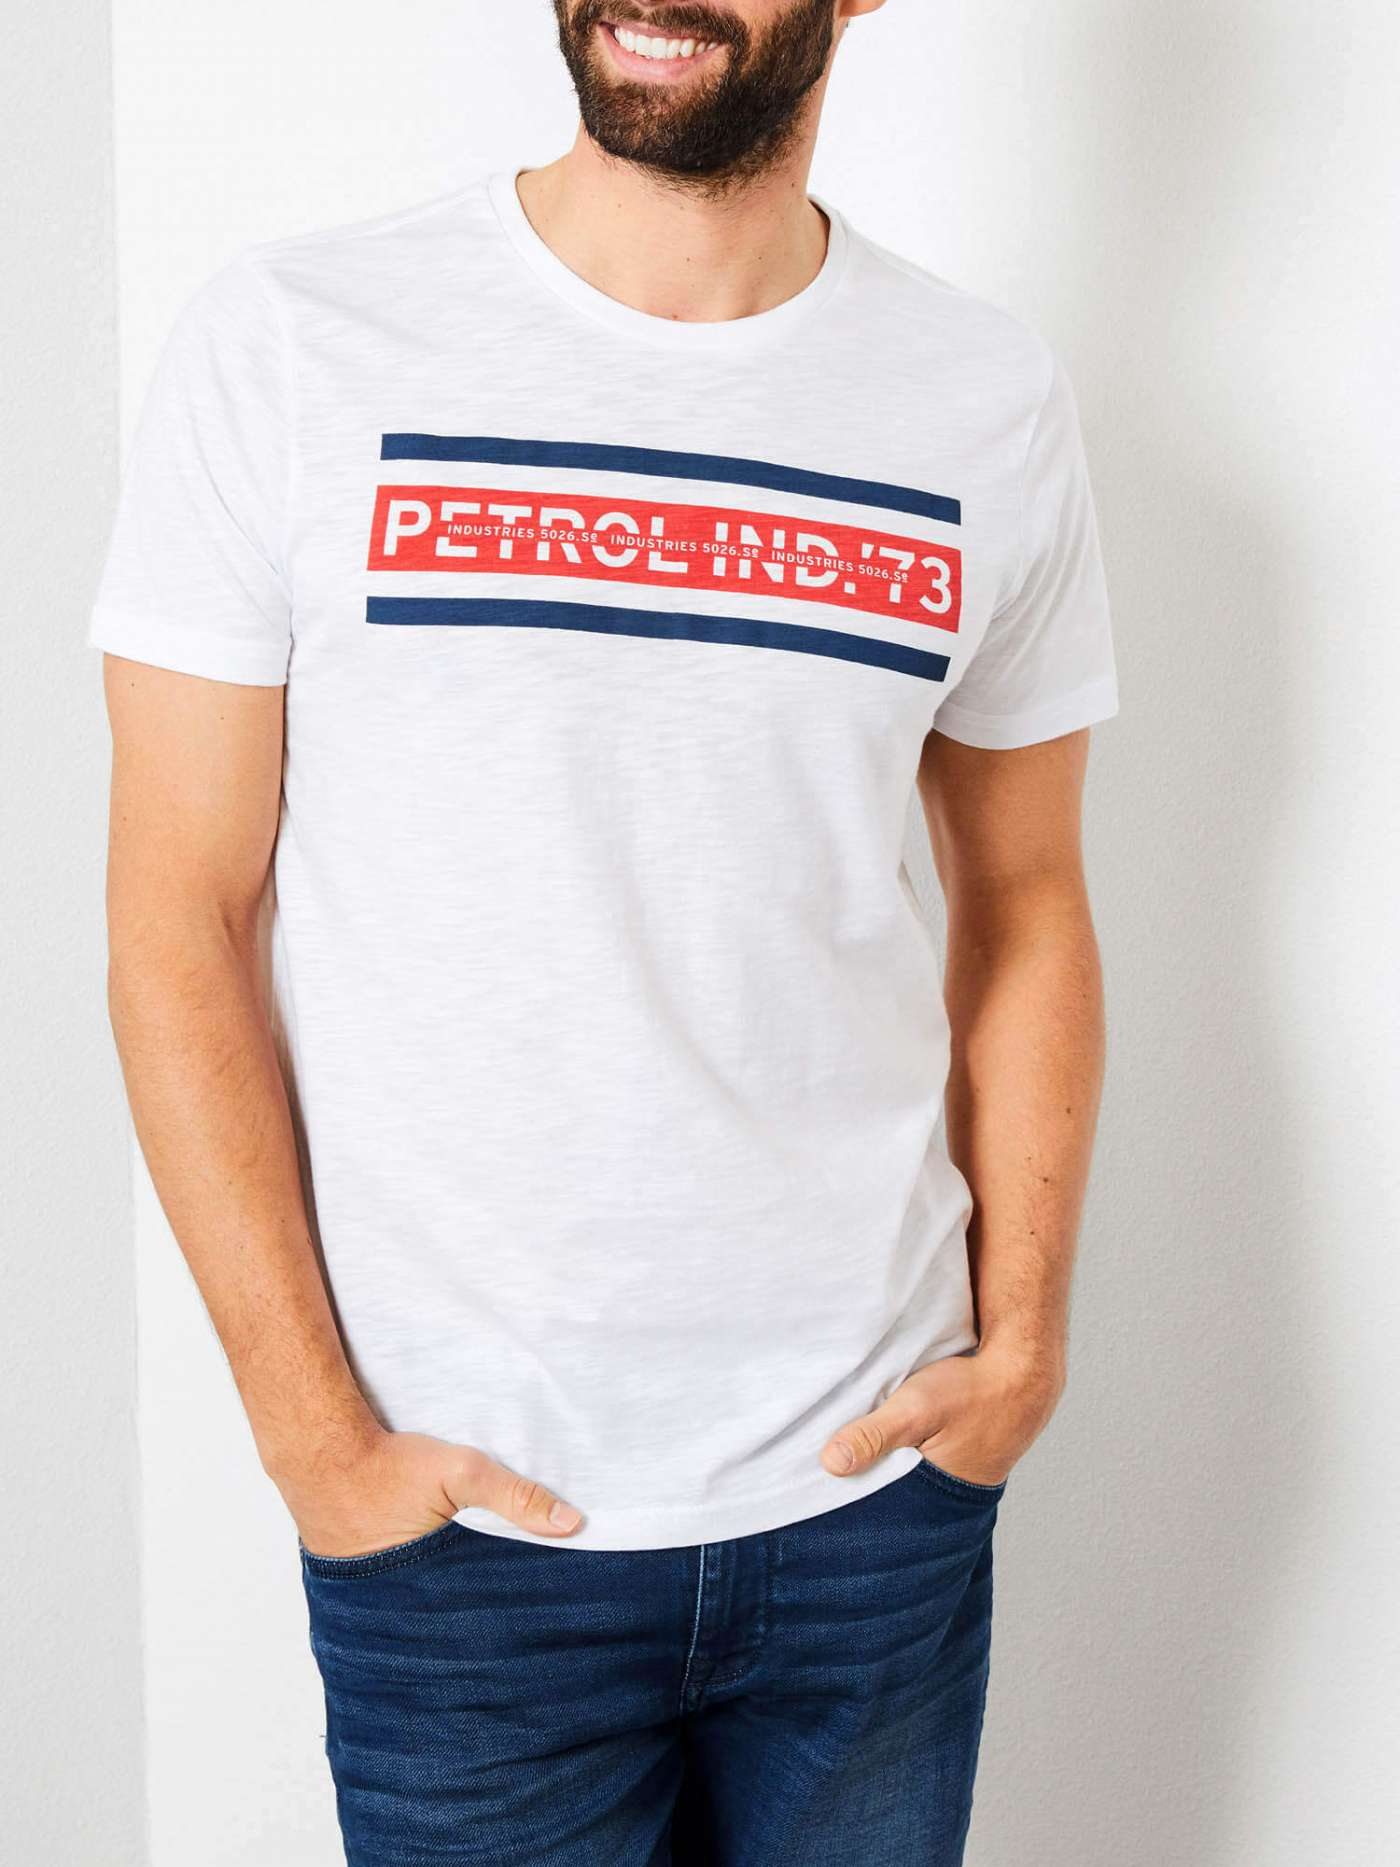 Petrol artwork T-Shirt